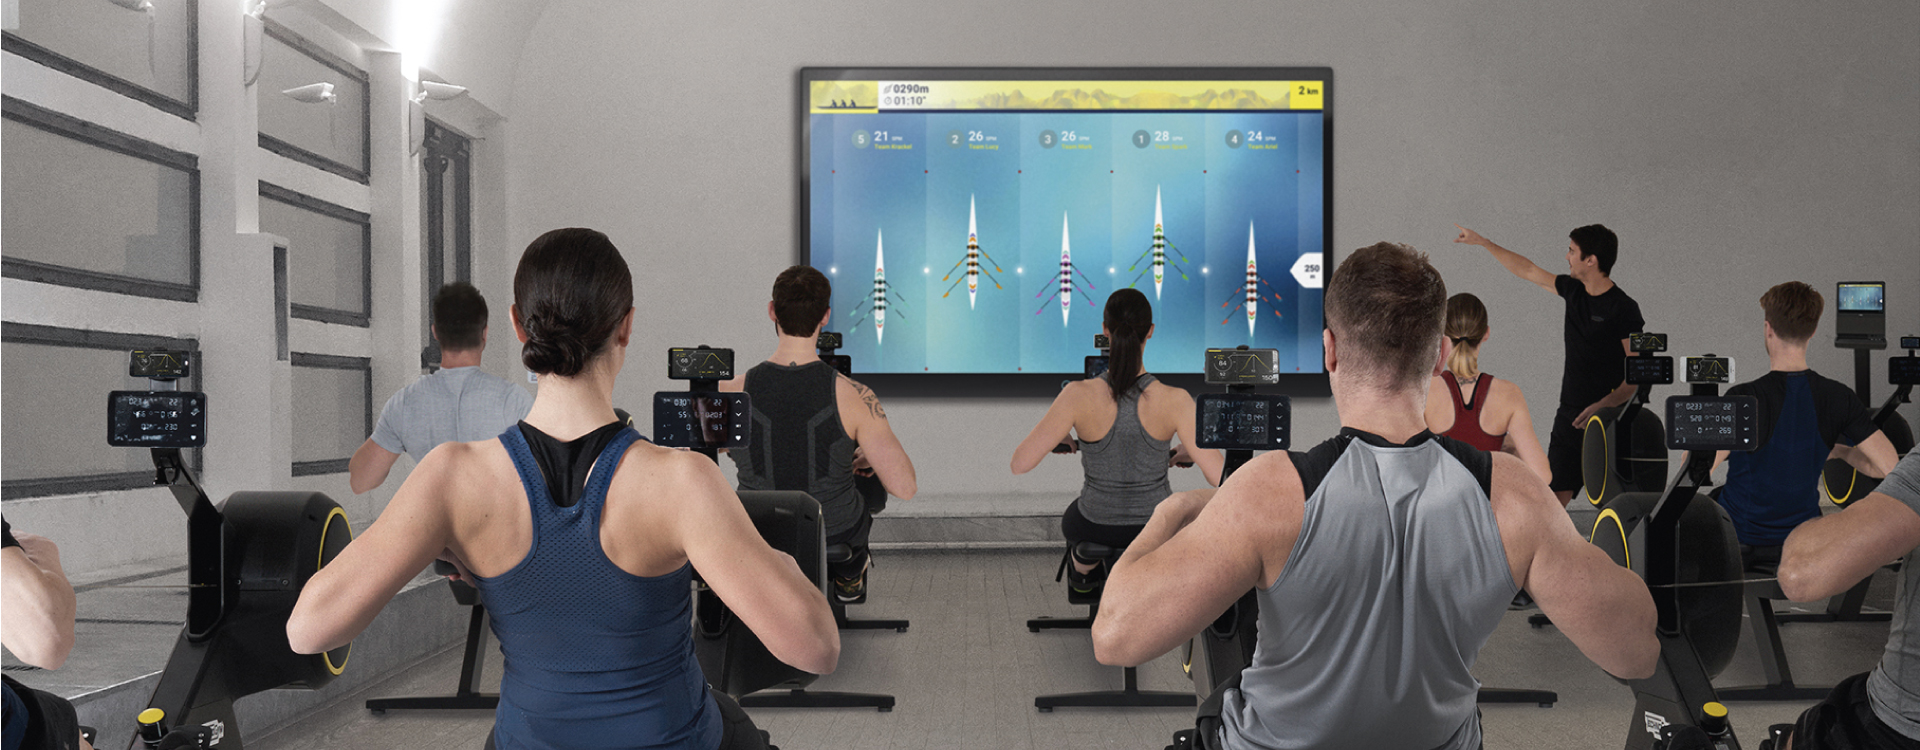 technogym skillrow the rowing machine for athletic training. Black Bedroom Furniture Sets. Home Design Ideas